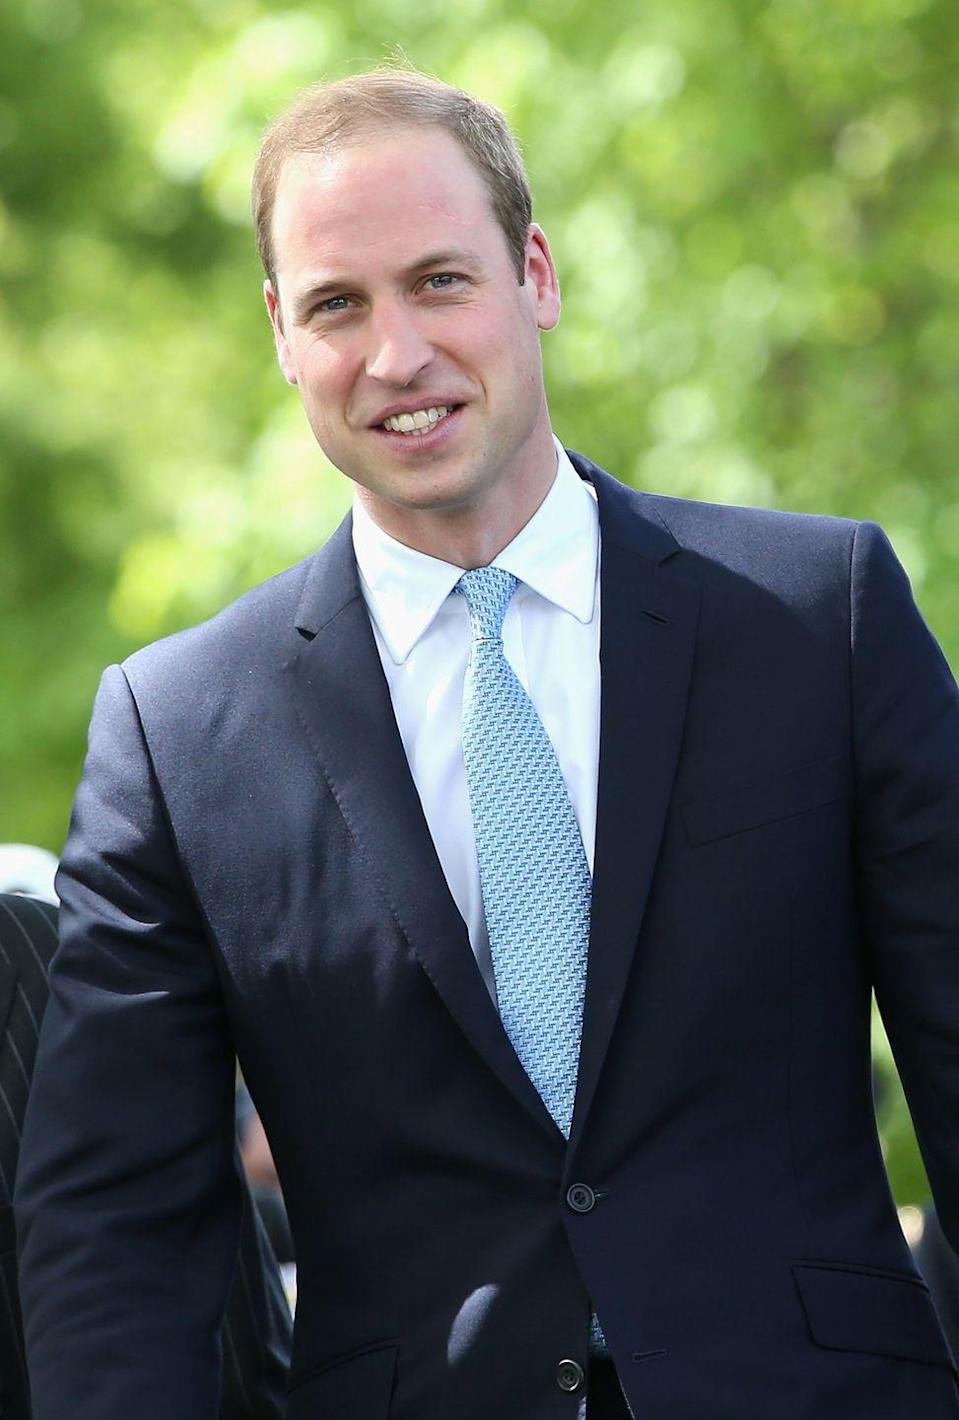 <p>The Duke of Cambridge will succeed the throne after his father, Prince Charles.</p>